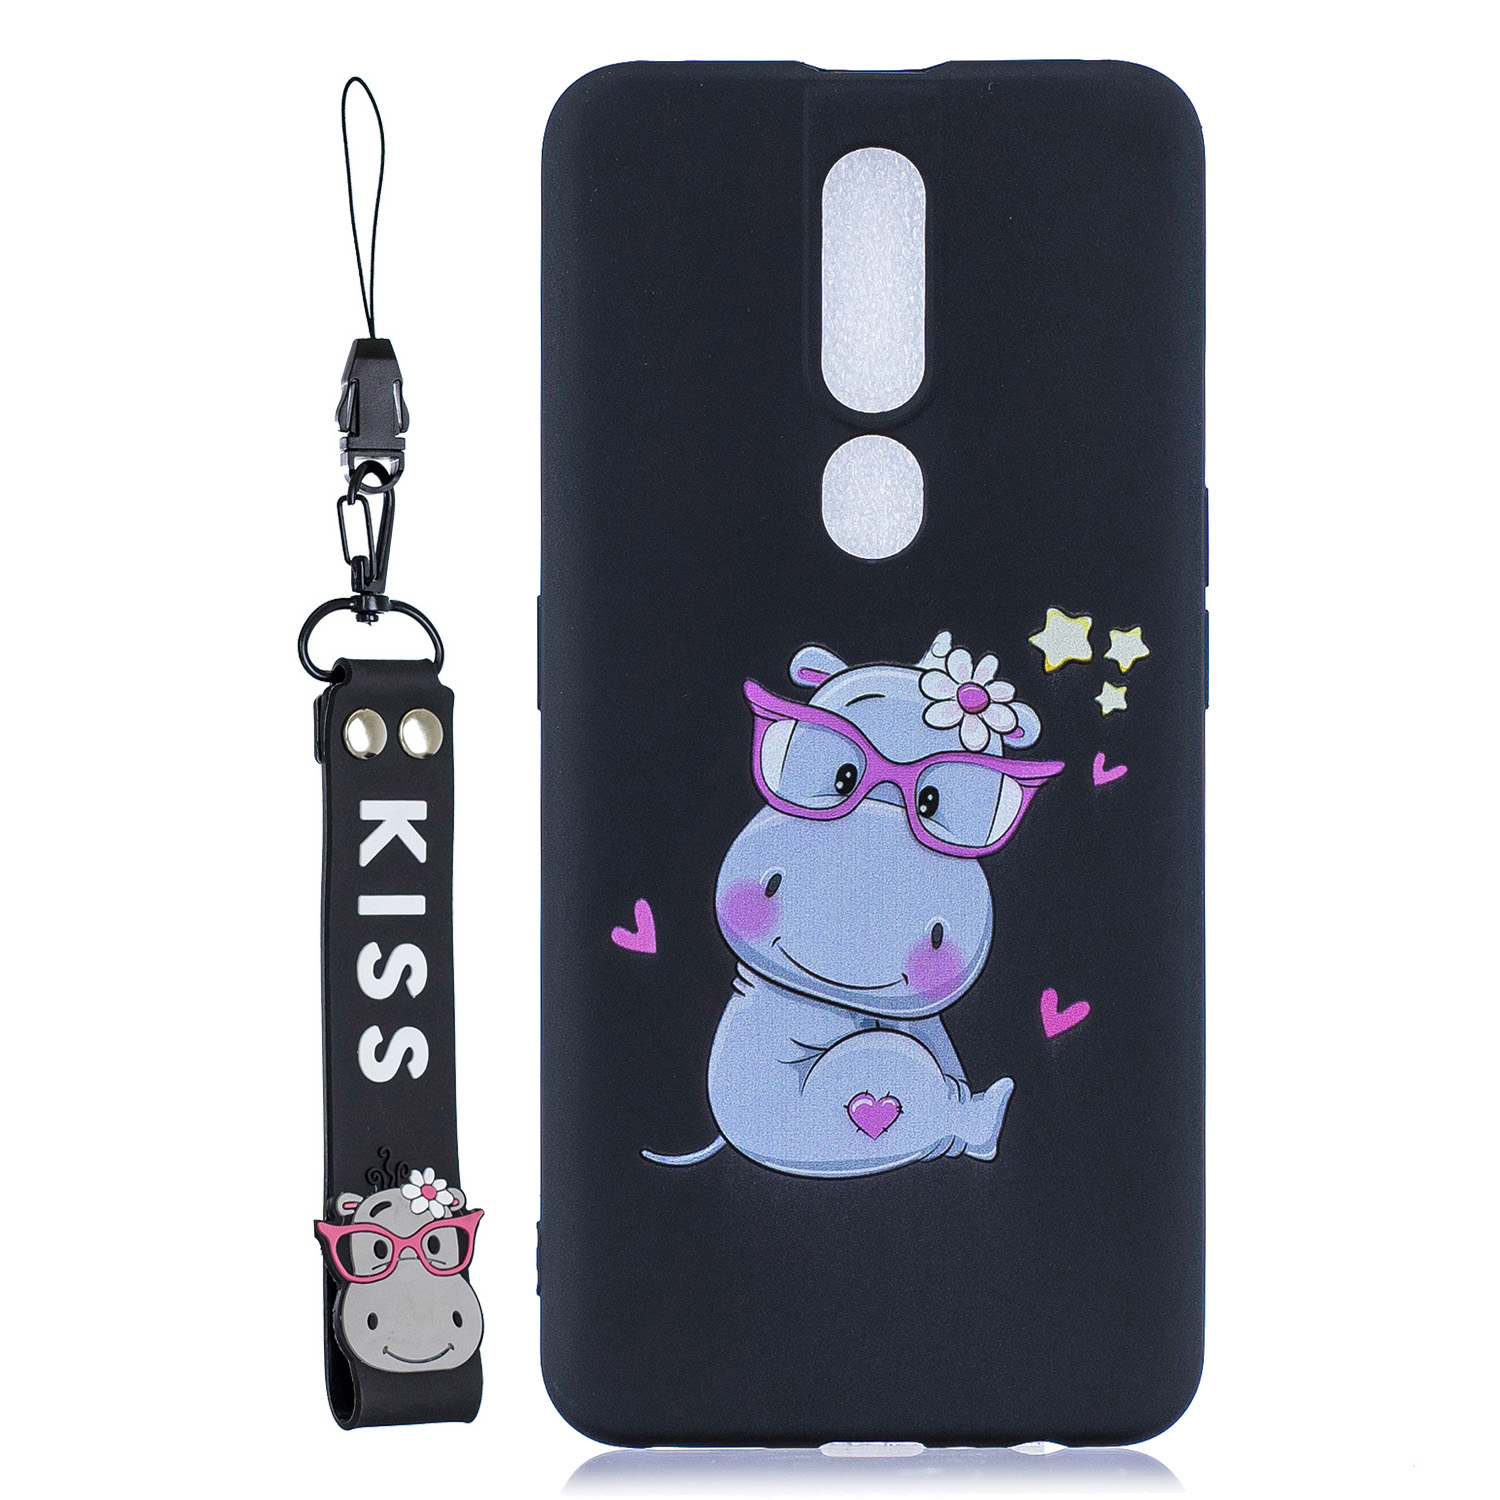 For OPPO F11 PRO Cartoon Lovely Coloured Painted Soft TPU Back Cover Non-slip Shockproof Full Protective Case with Lanyard black